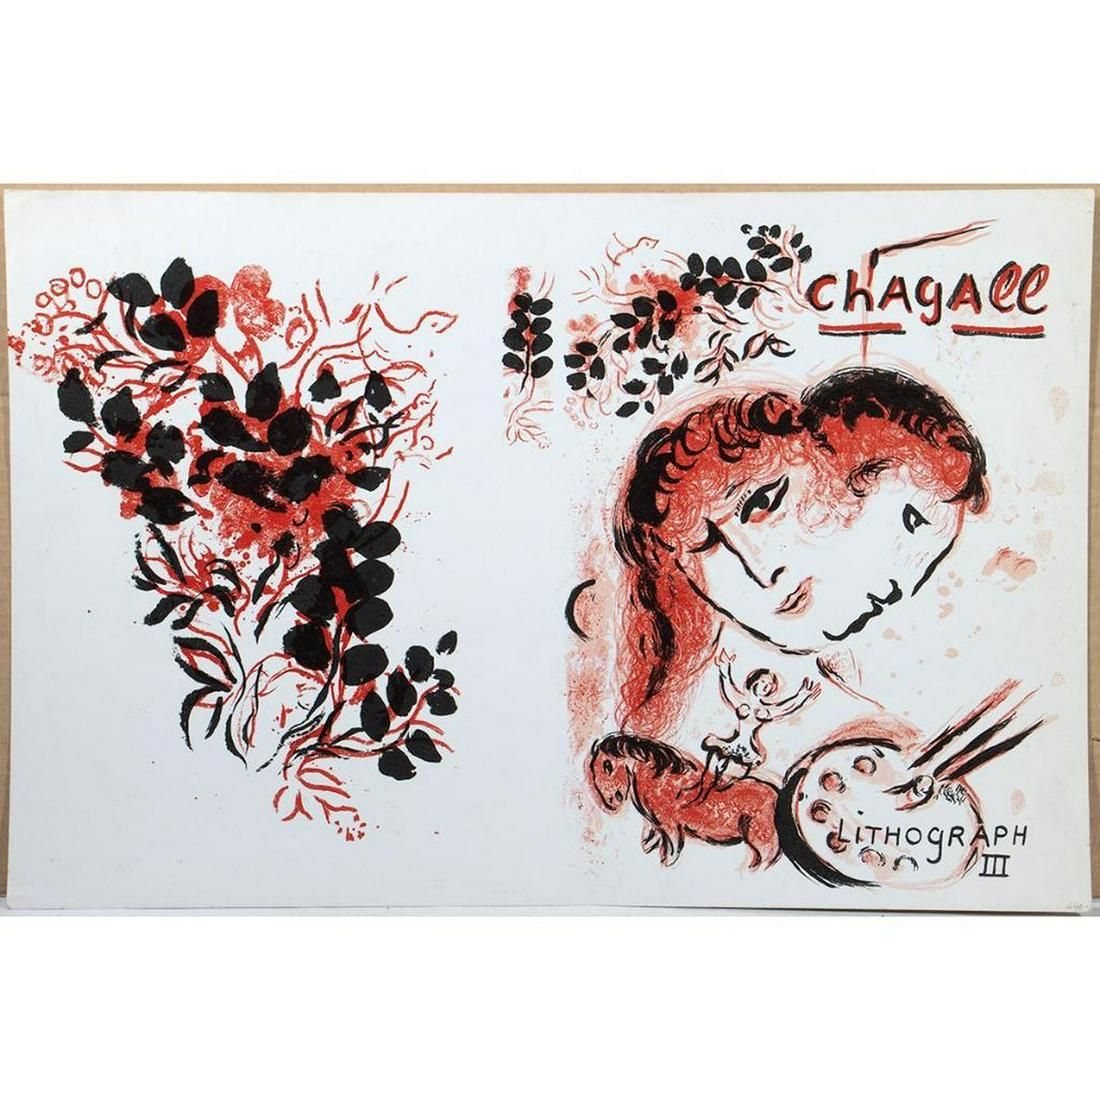 Marc Chagall/Lithograph III